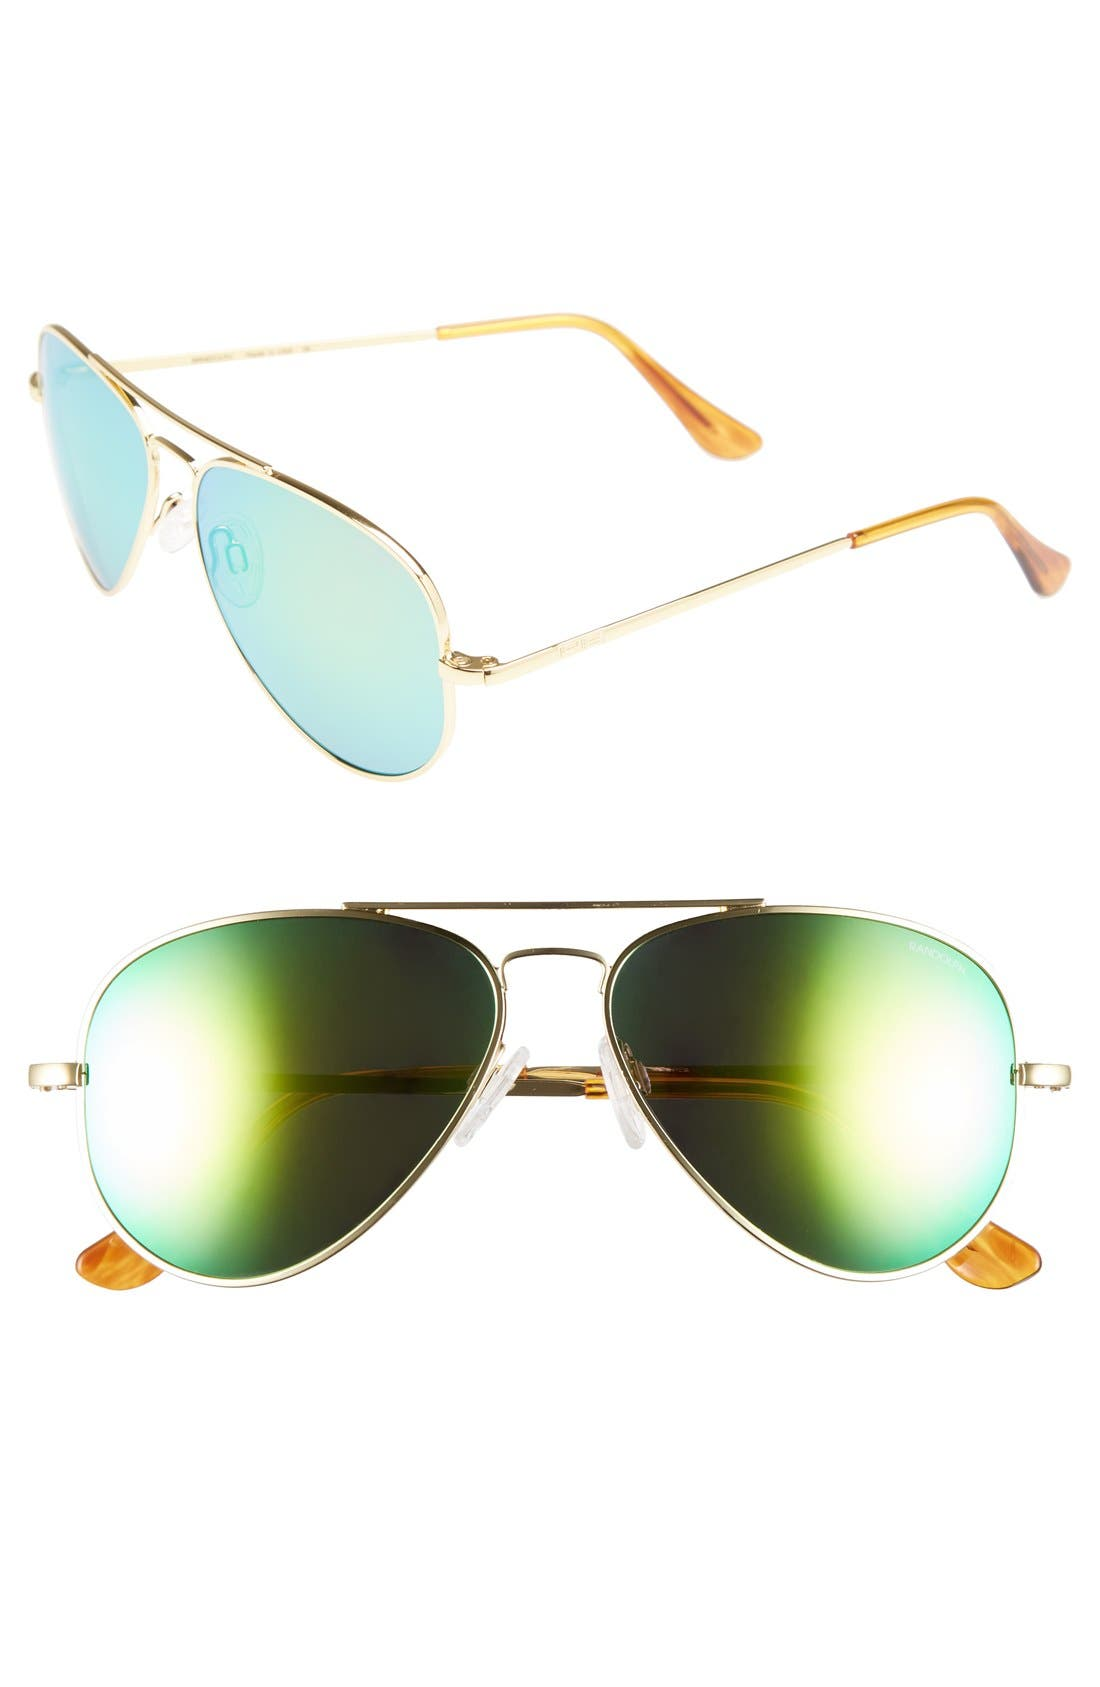 'Concorde - Flash' 57mm Aviator Sunglasses,                             Main thumbnail 1, color,                             710